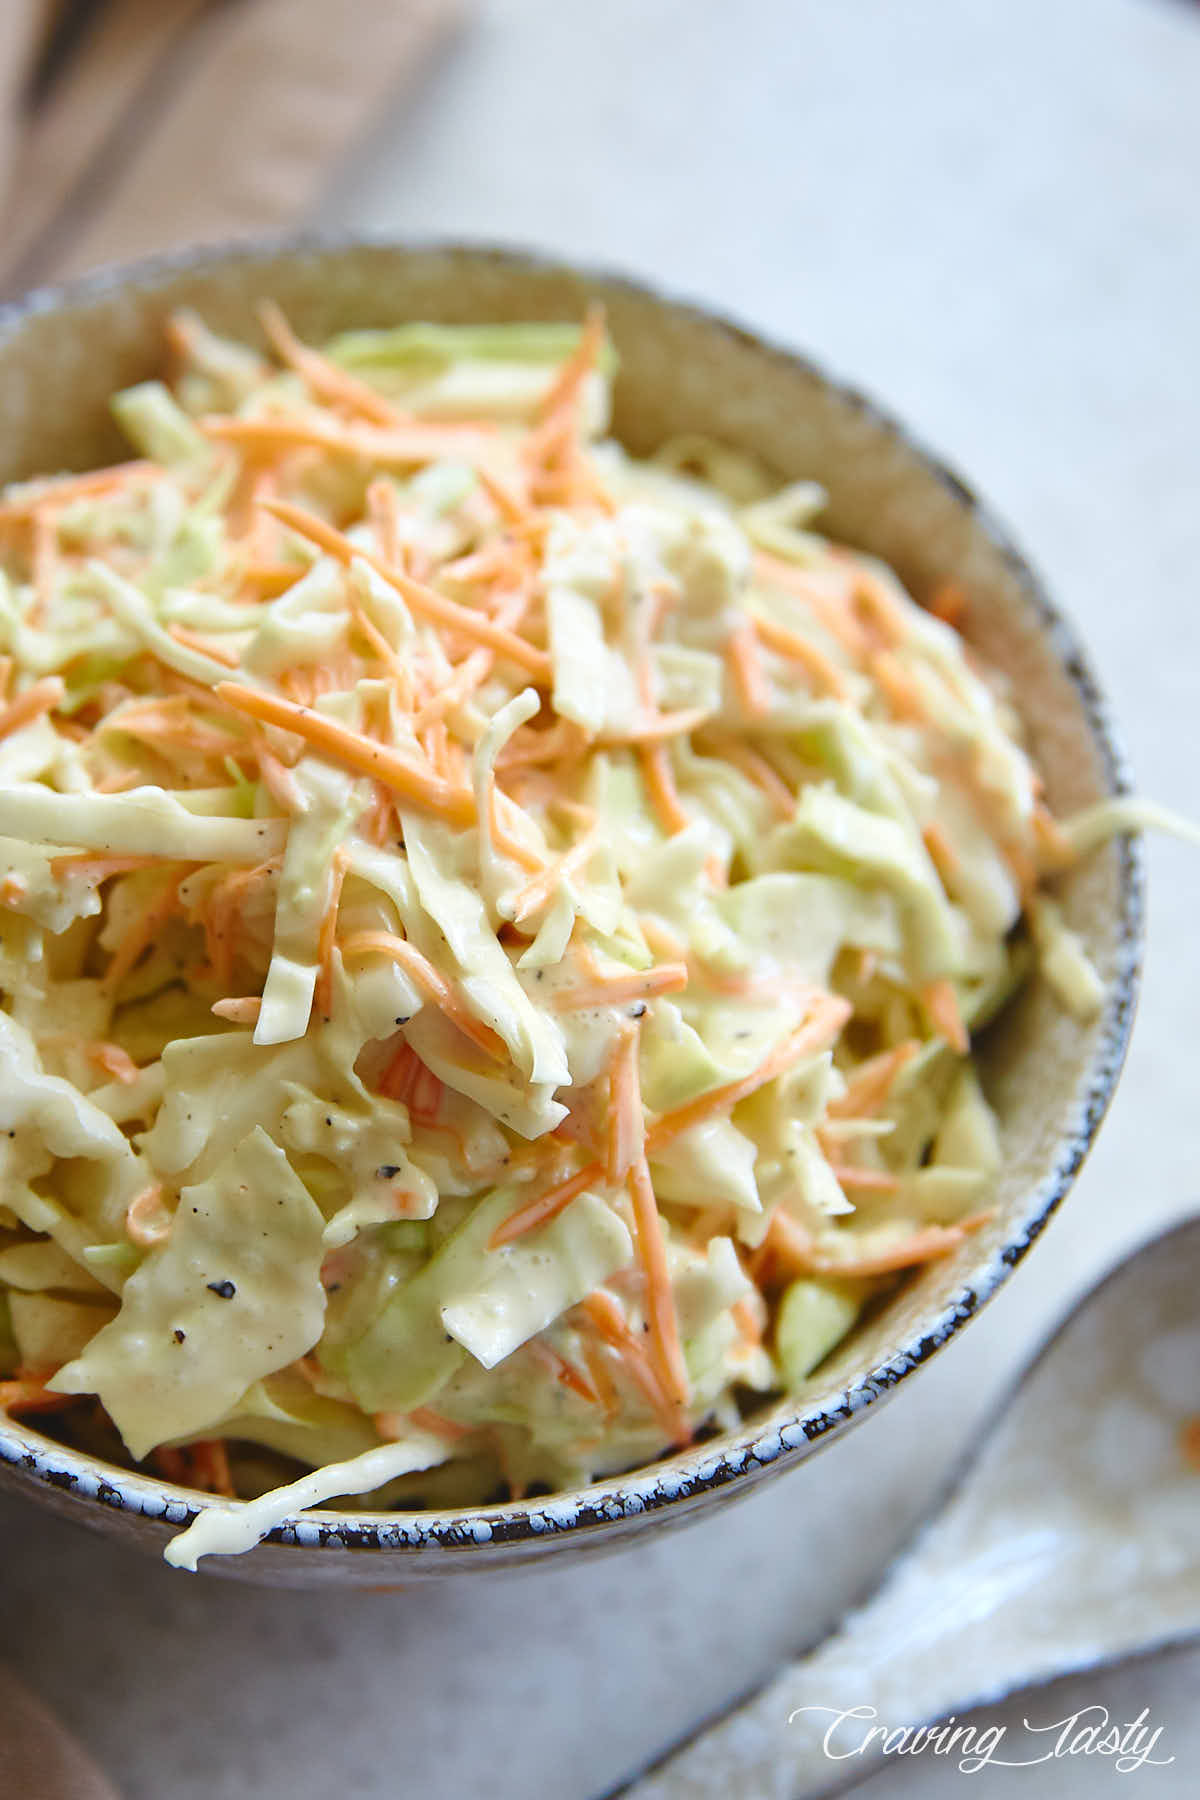 Homemade coleslaw inside a speckled grey bowl, on a table with a spoon next to the bowl.